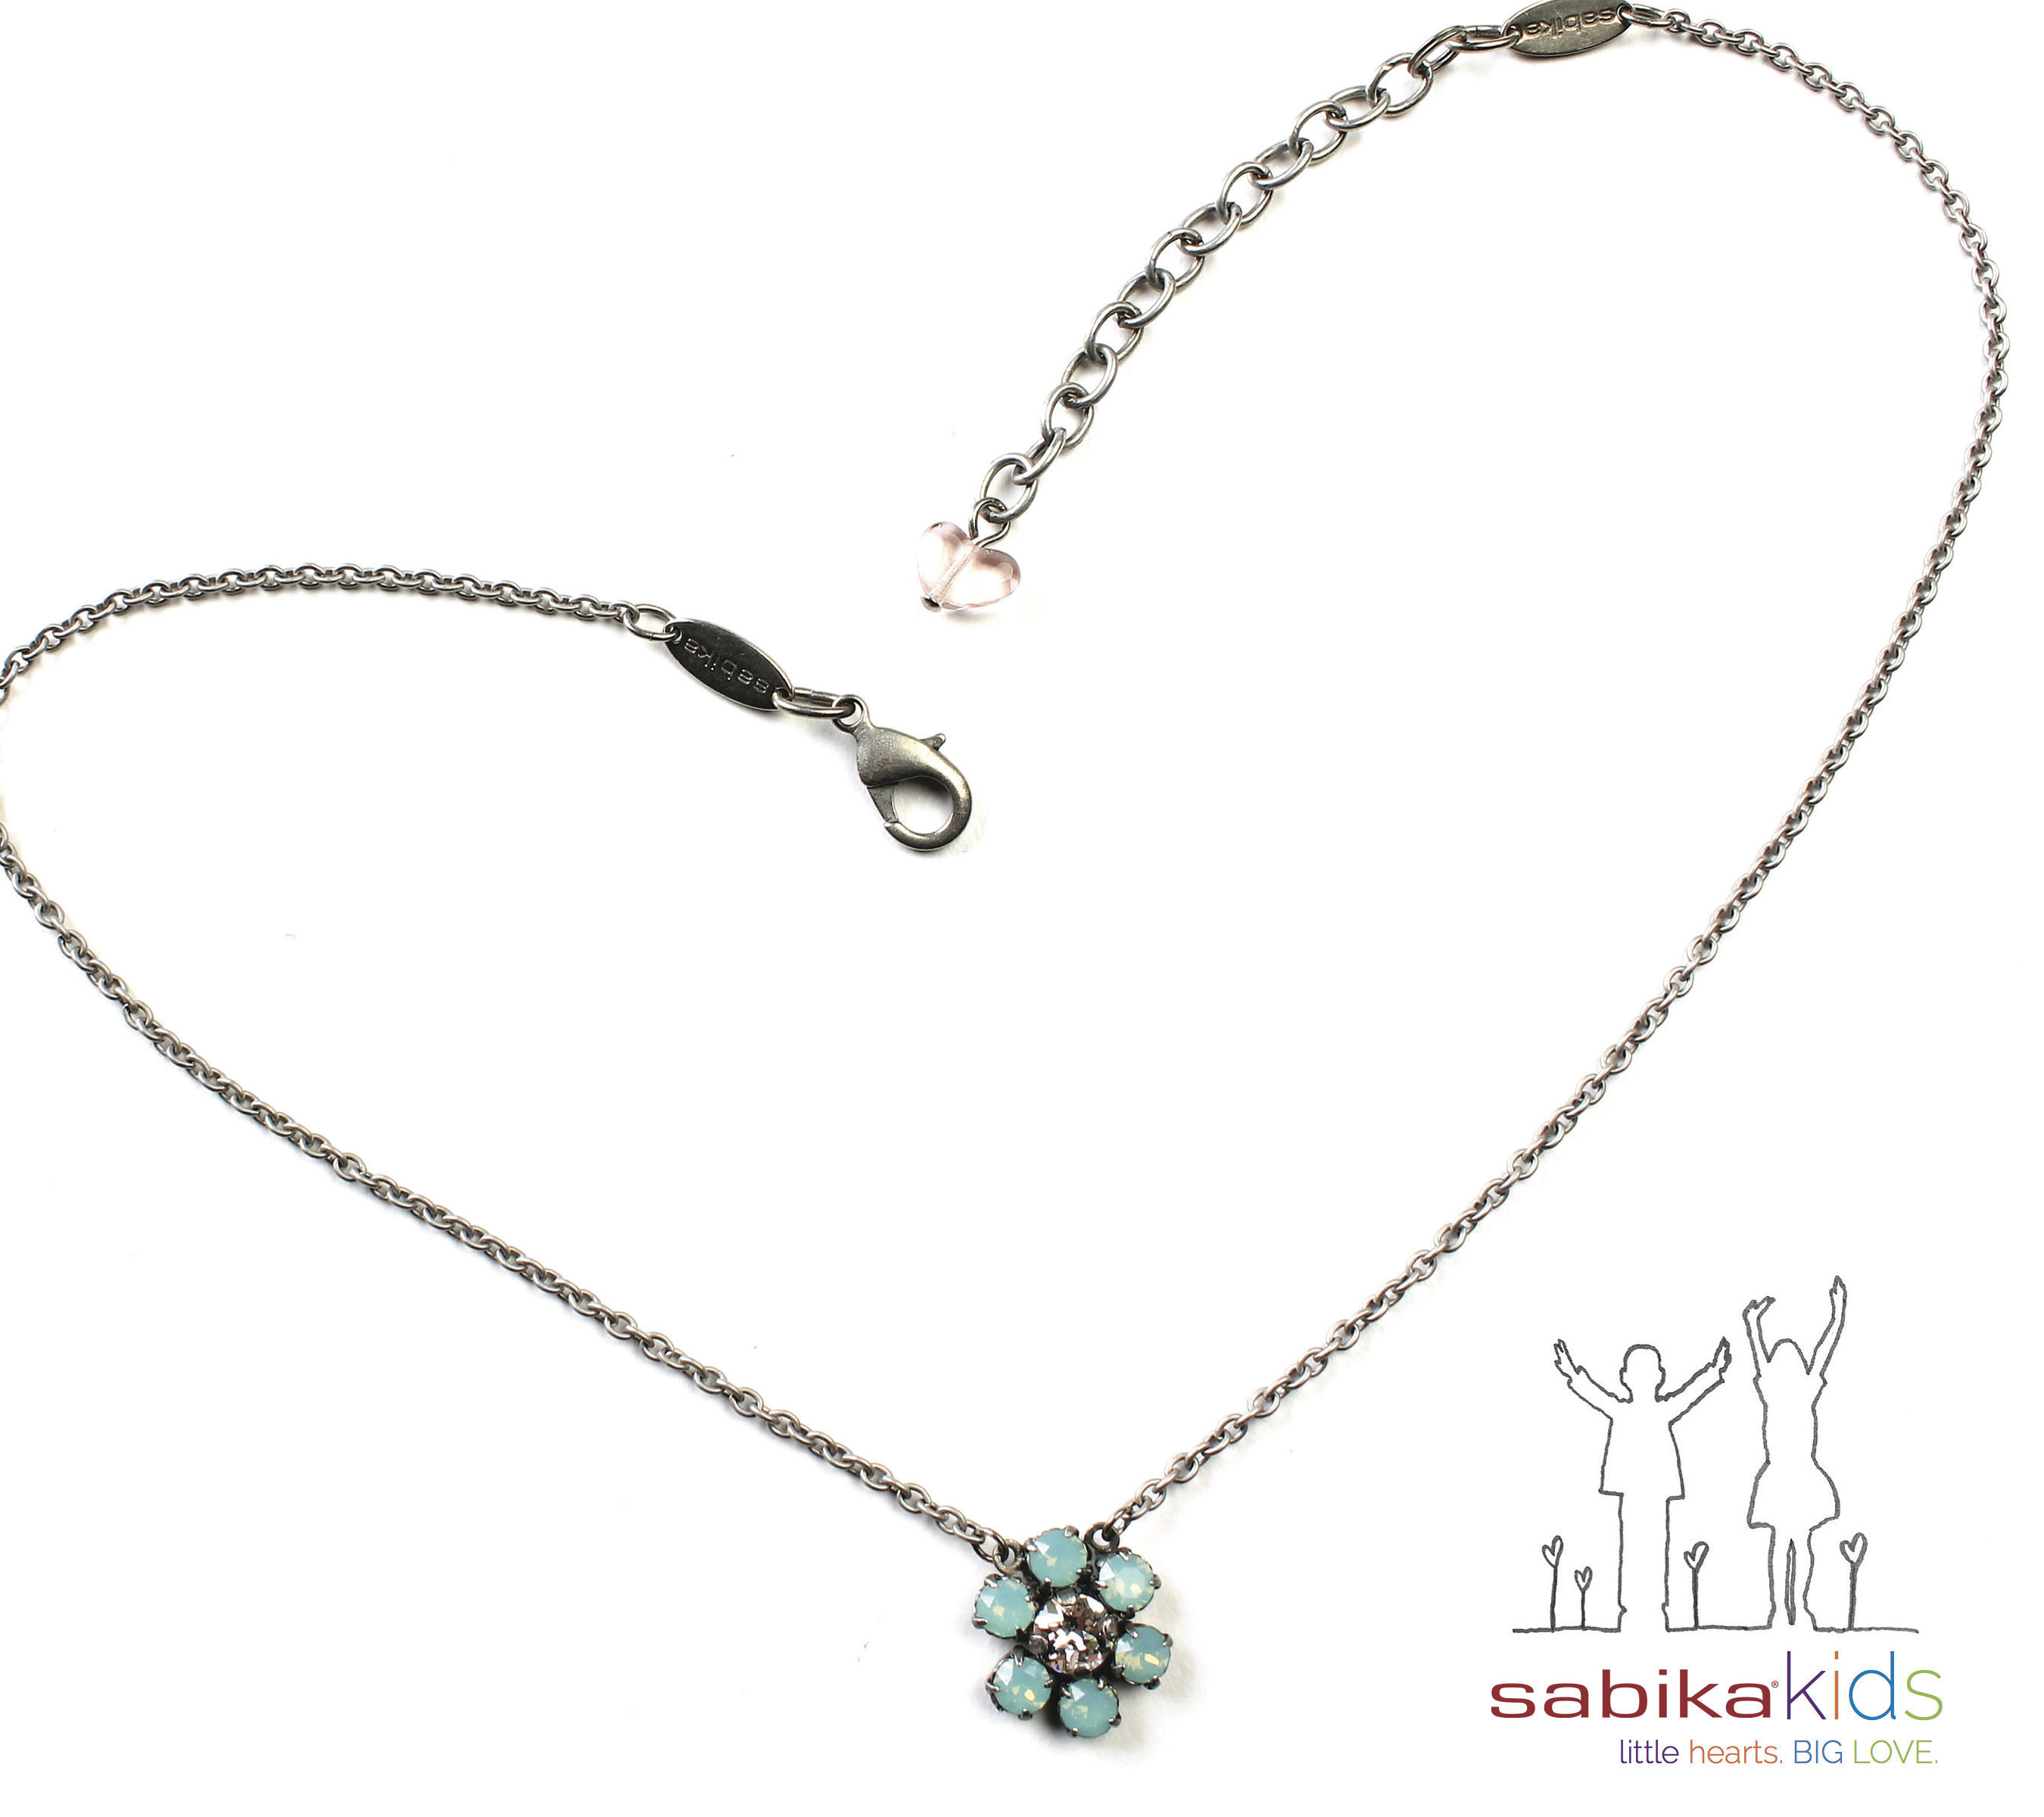 The Power of a Little Flower! $25 from every Little Hearts Sabika Daisy(R) Necklace sold is donated to help abused children during Sabikakids month this April. For more information, www.sabika-jewelry.com.